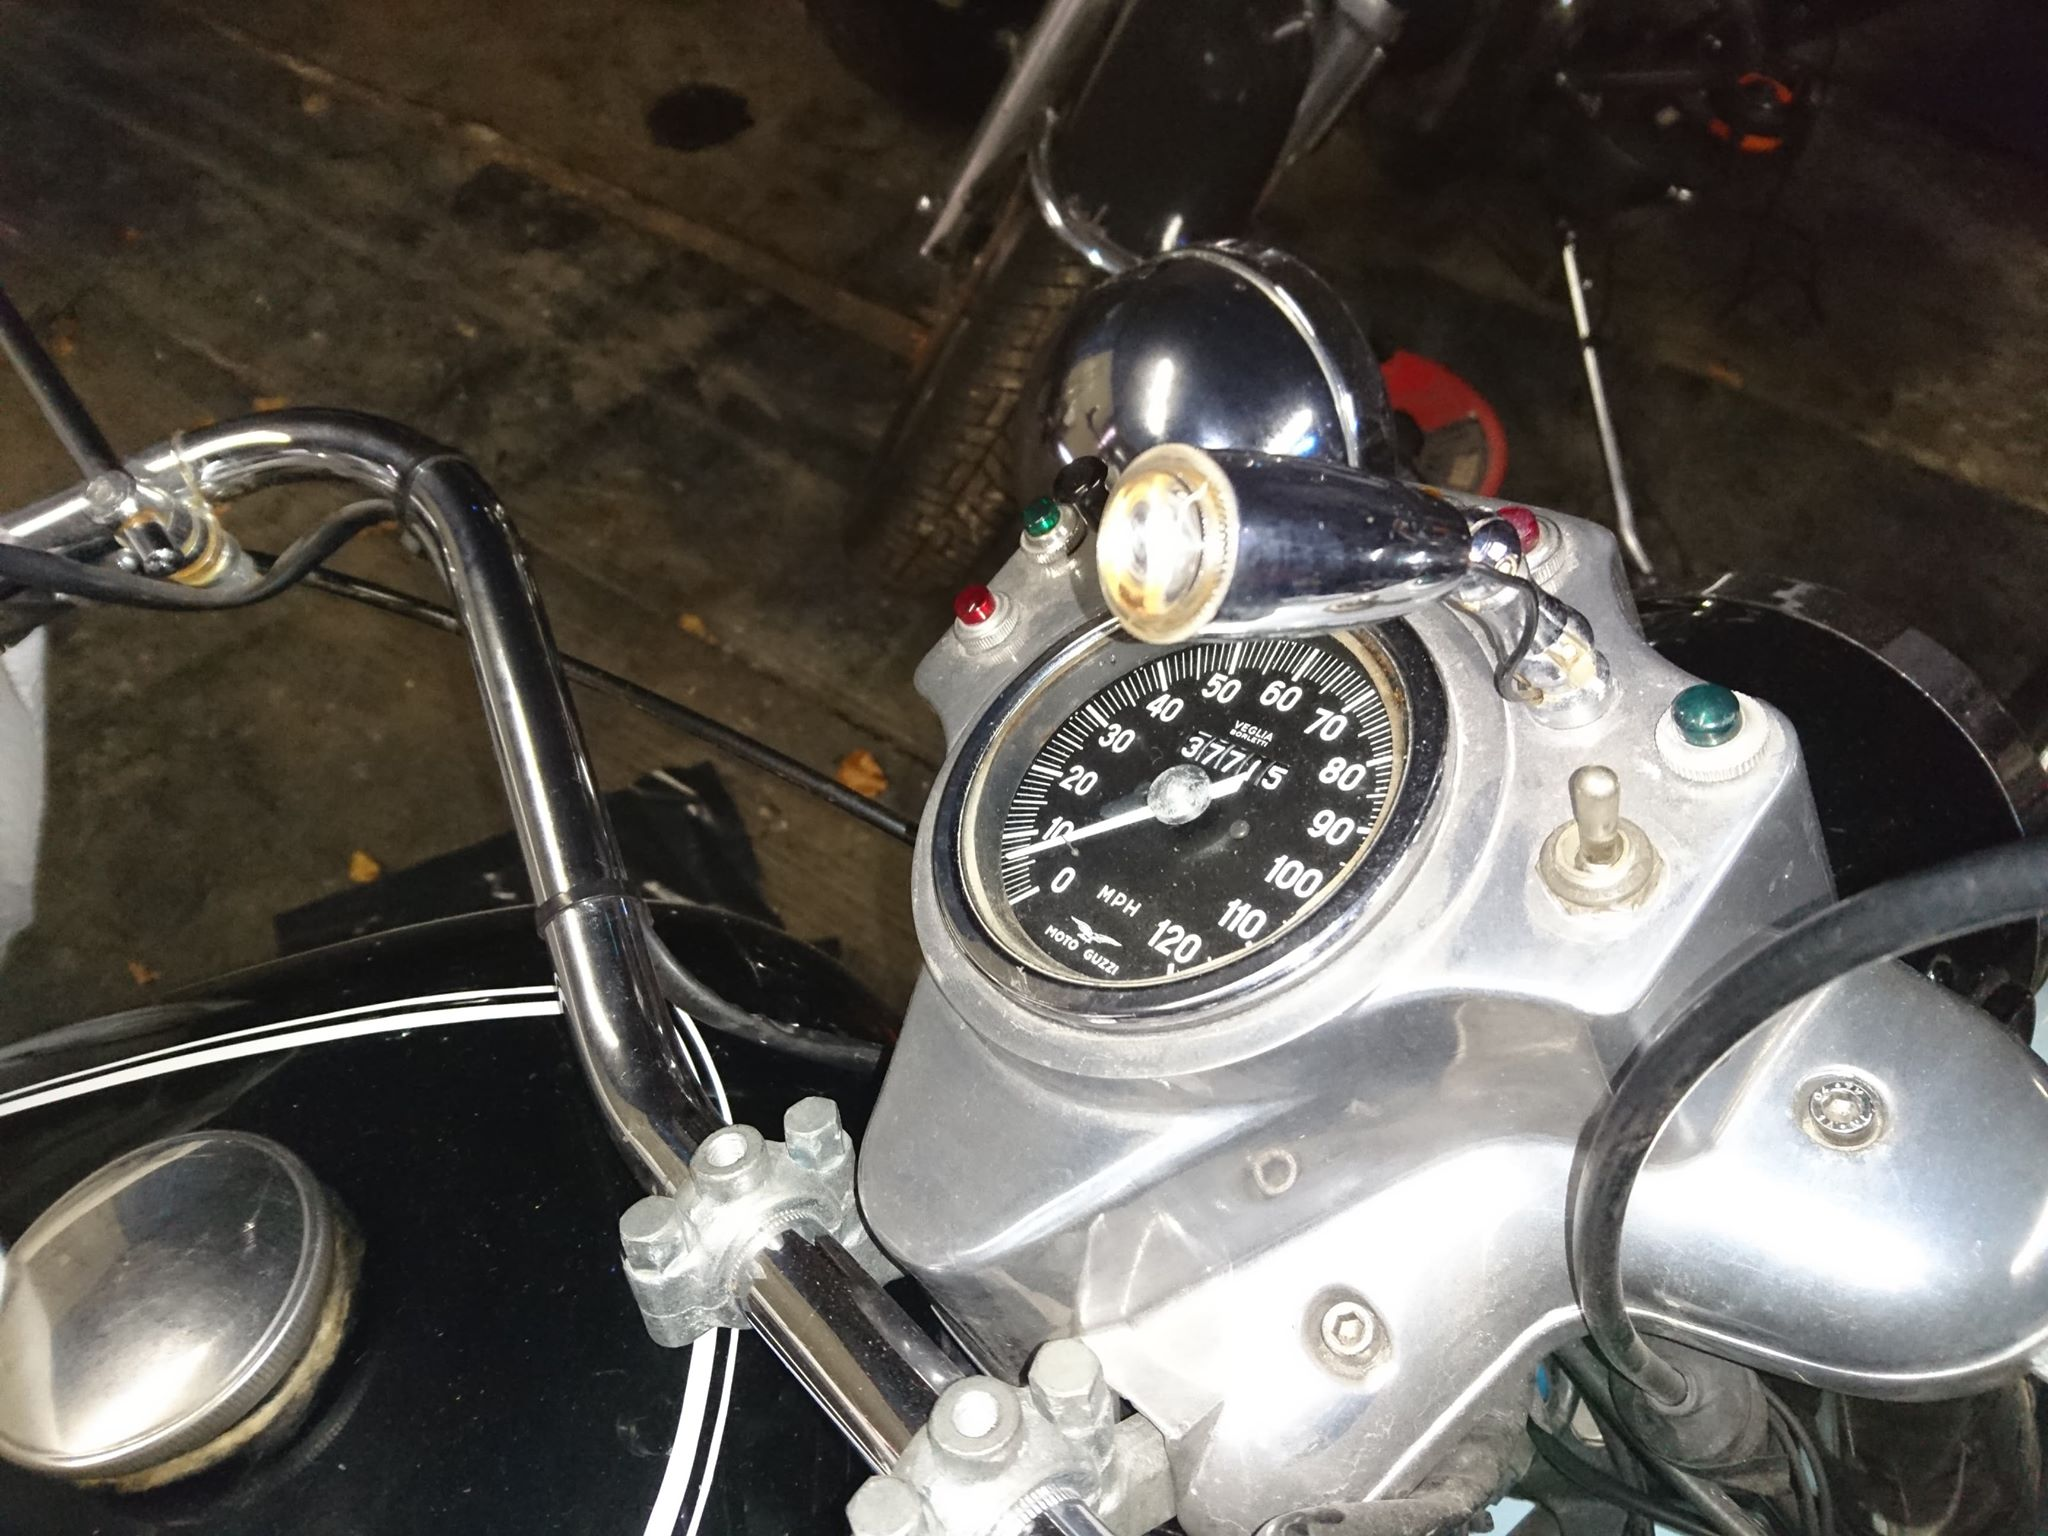 Map light. Applicable to Moto Guzzi police models such as the V700, V7 Special, Ambassador, 850 GT, 850 GT California, Eldorado, and 850 California Police models.